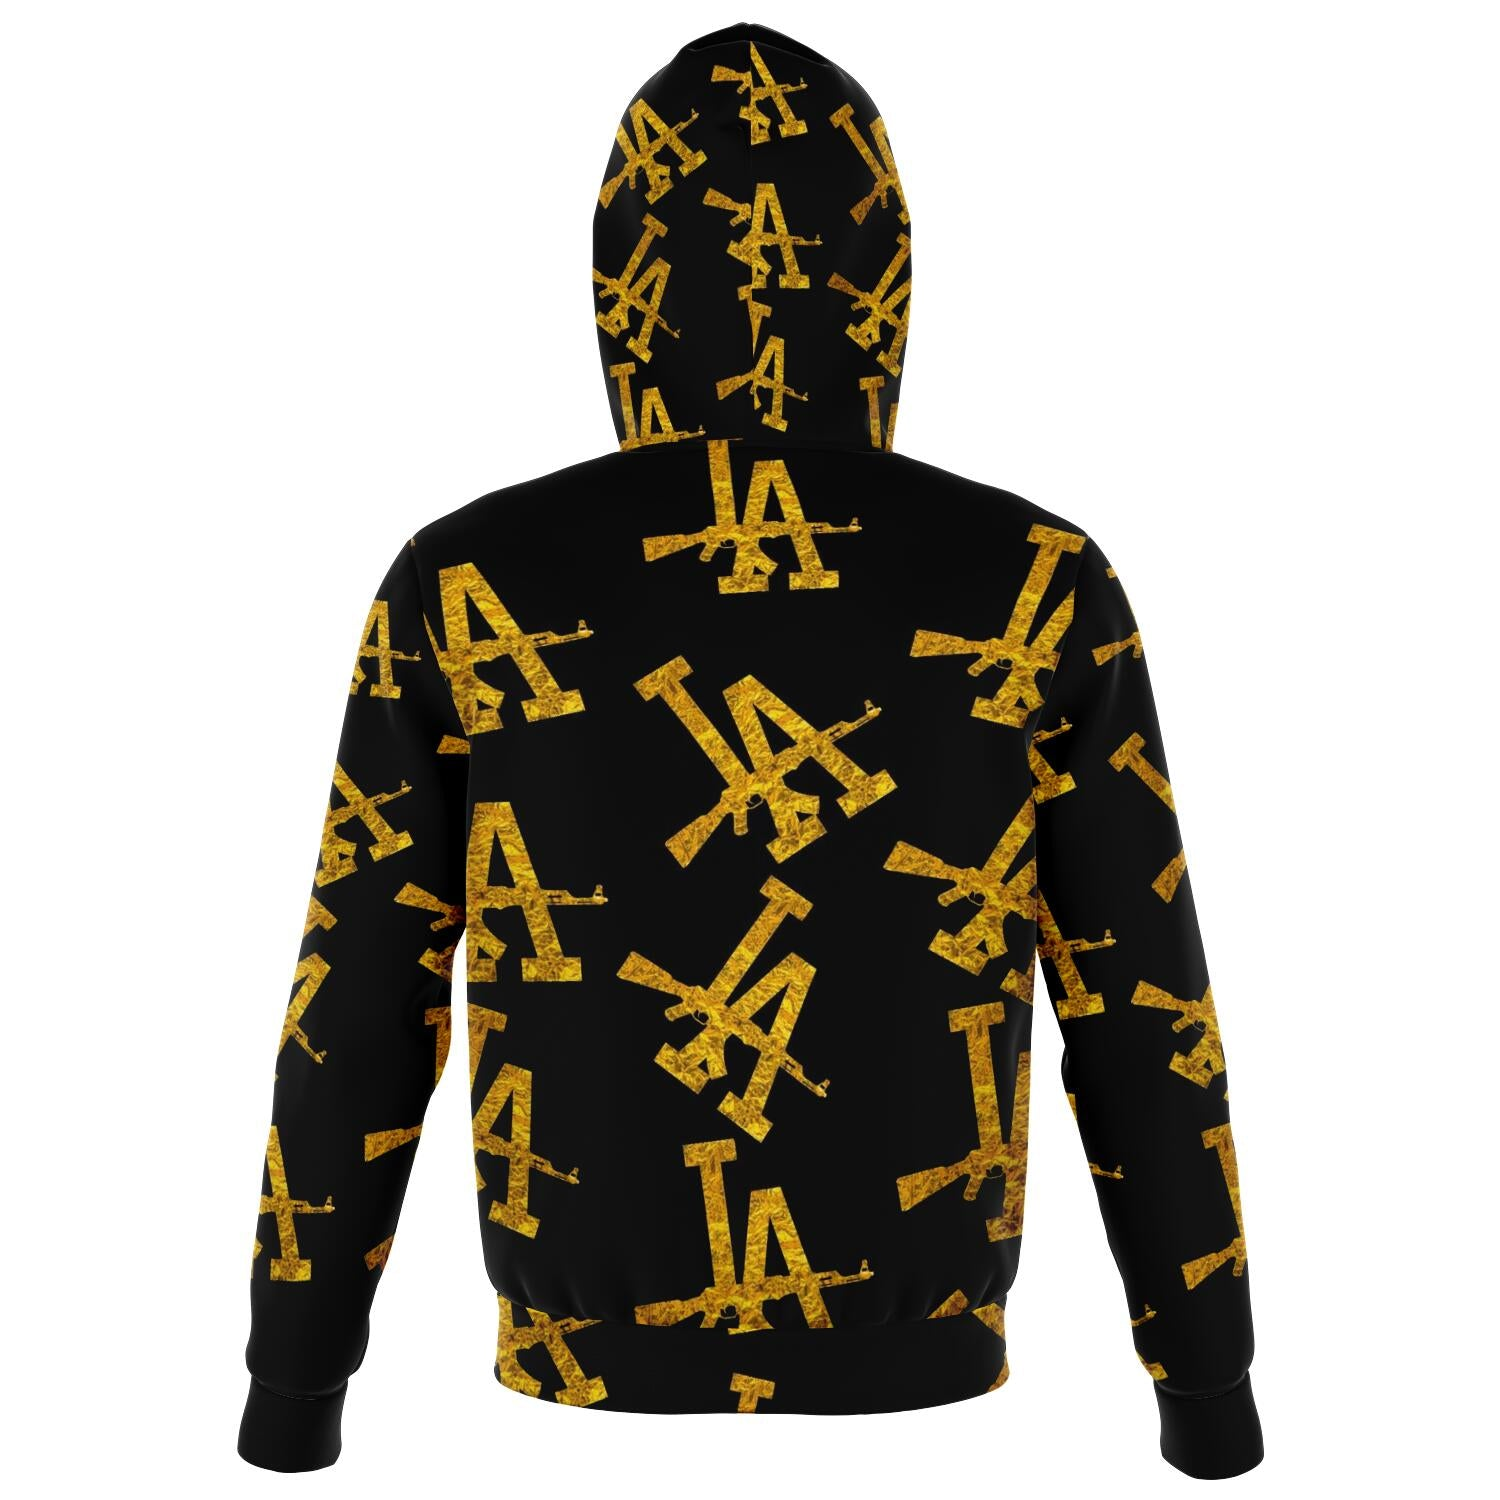 SINALOA 701 LA KING ZIP UP HOODIE